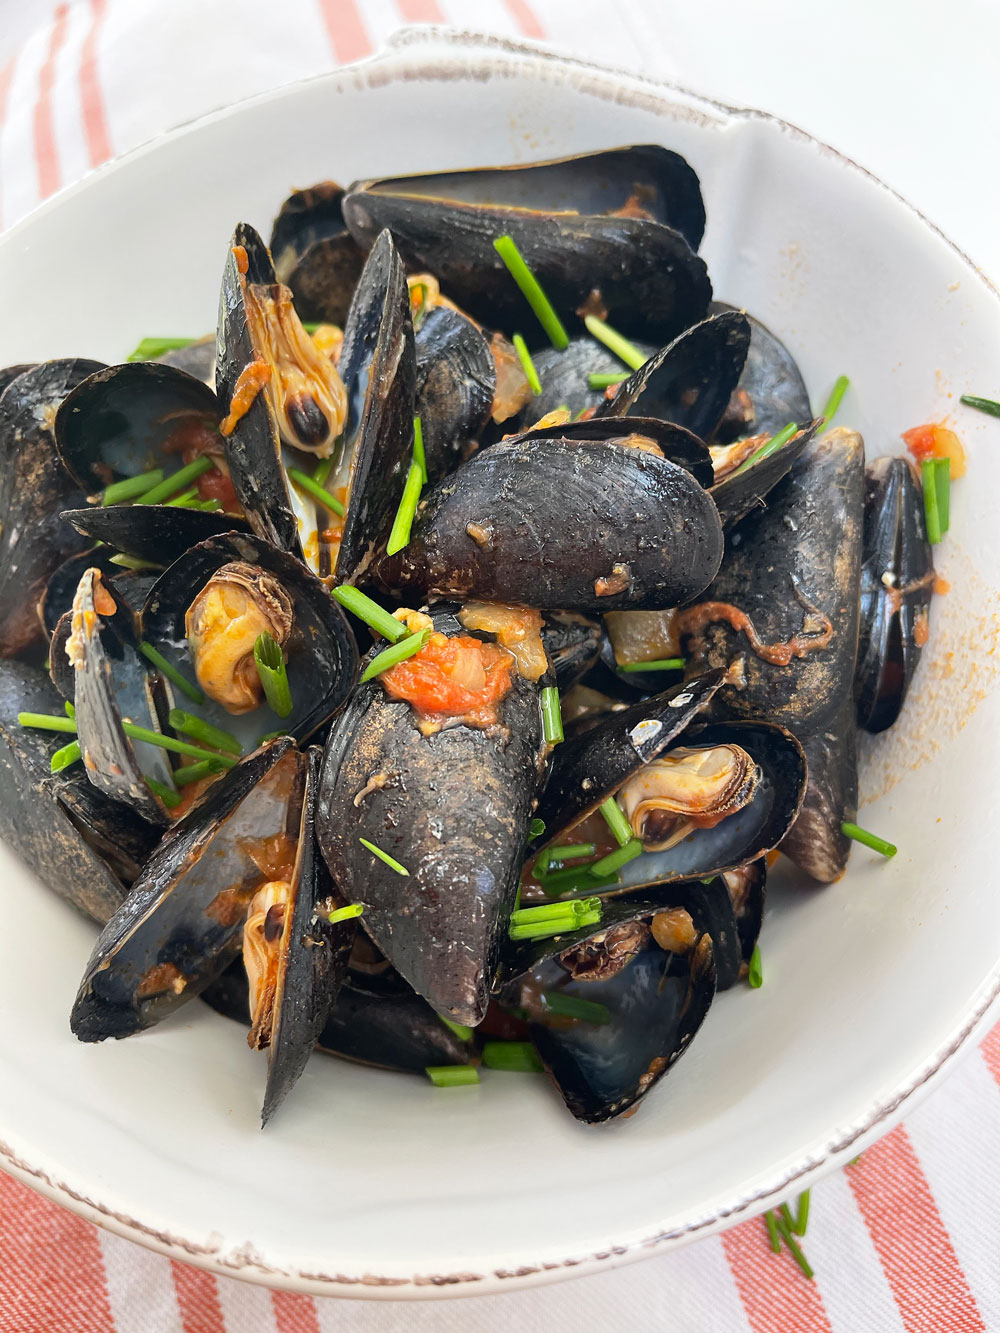 3 Ingredient Mussels recipe with a saucy Amatriciana. Easy summer seafood recipe! Happy Cooking! www.Chophappy.com #mussels #summerrecipe